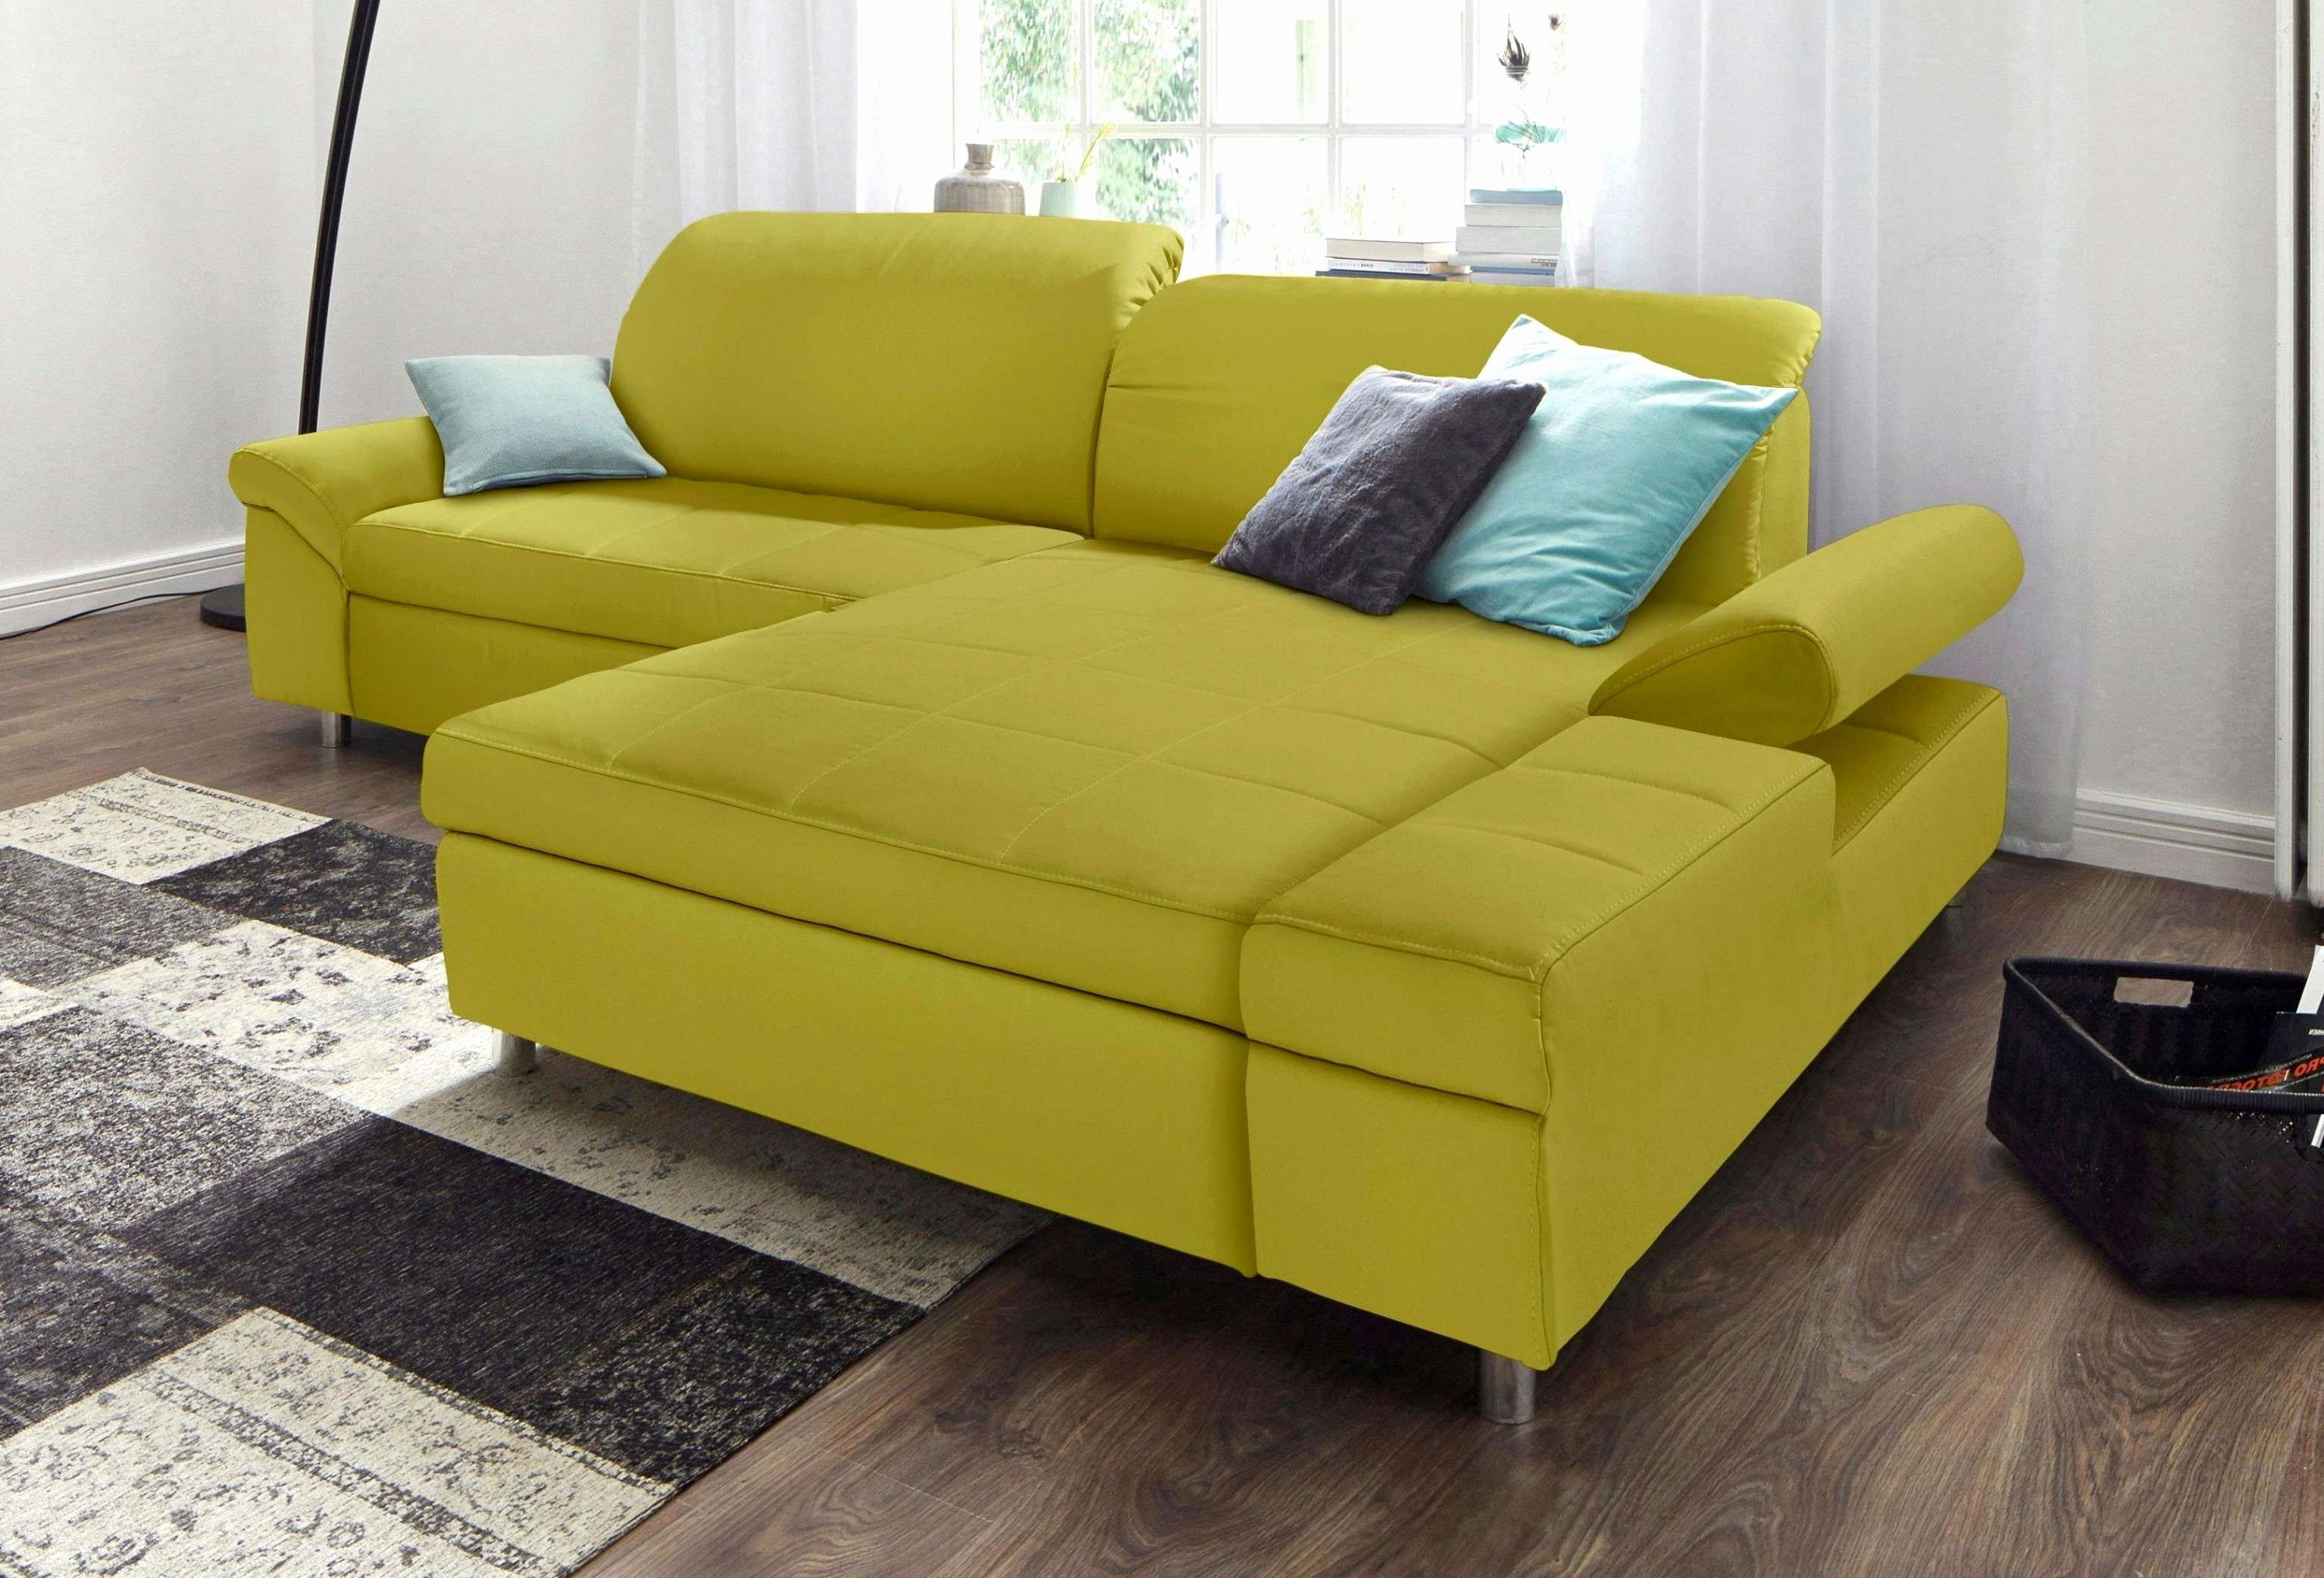 22 Neue Synergie Haus Sleeper Sofa Sofa Yellow Living Room